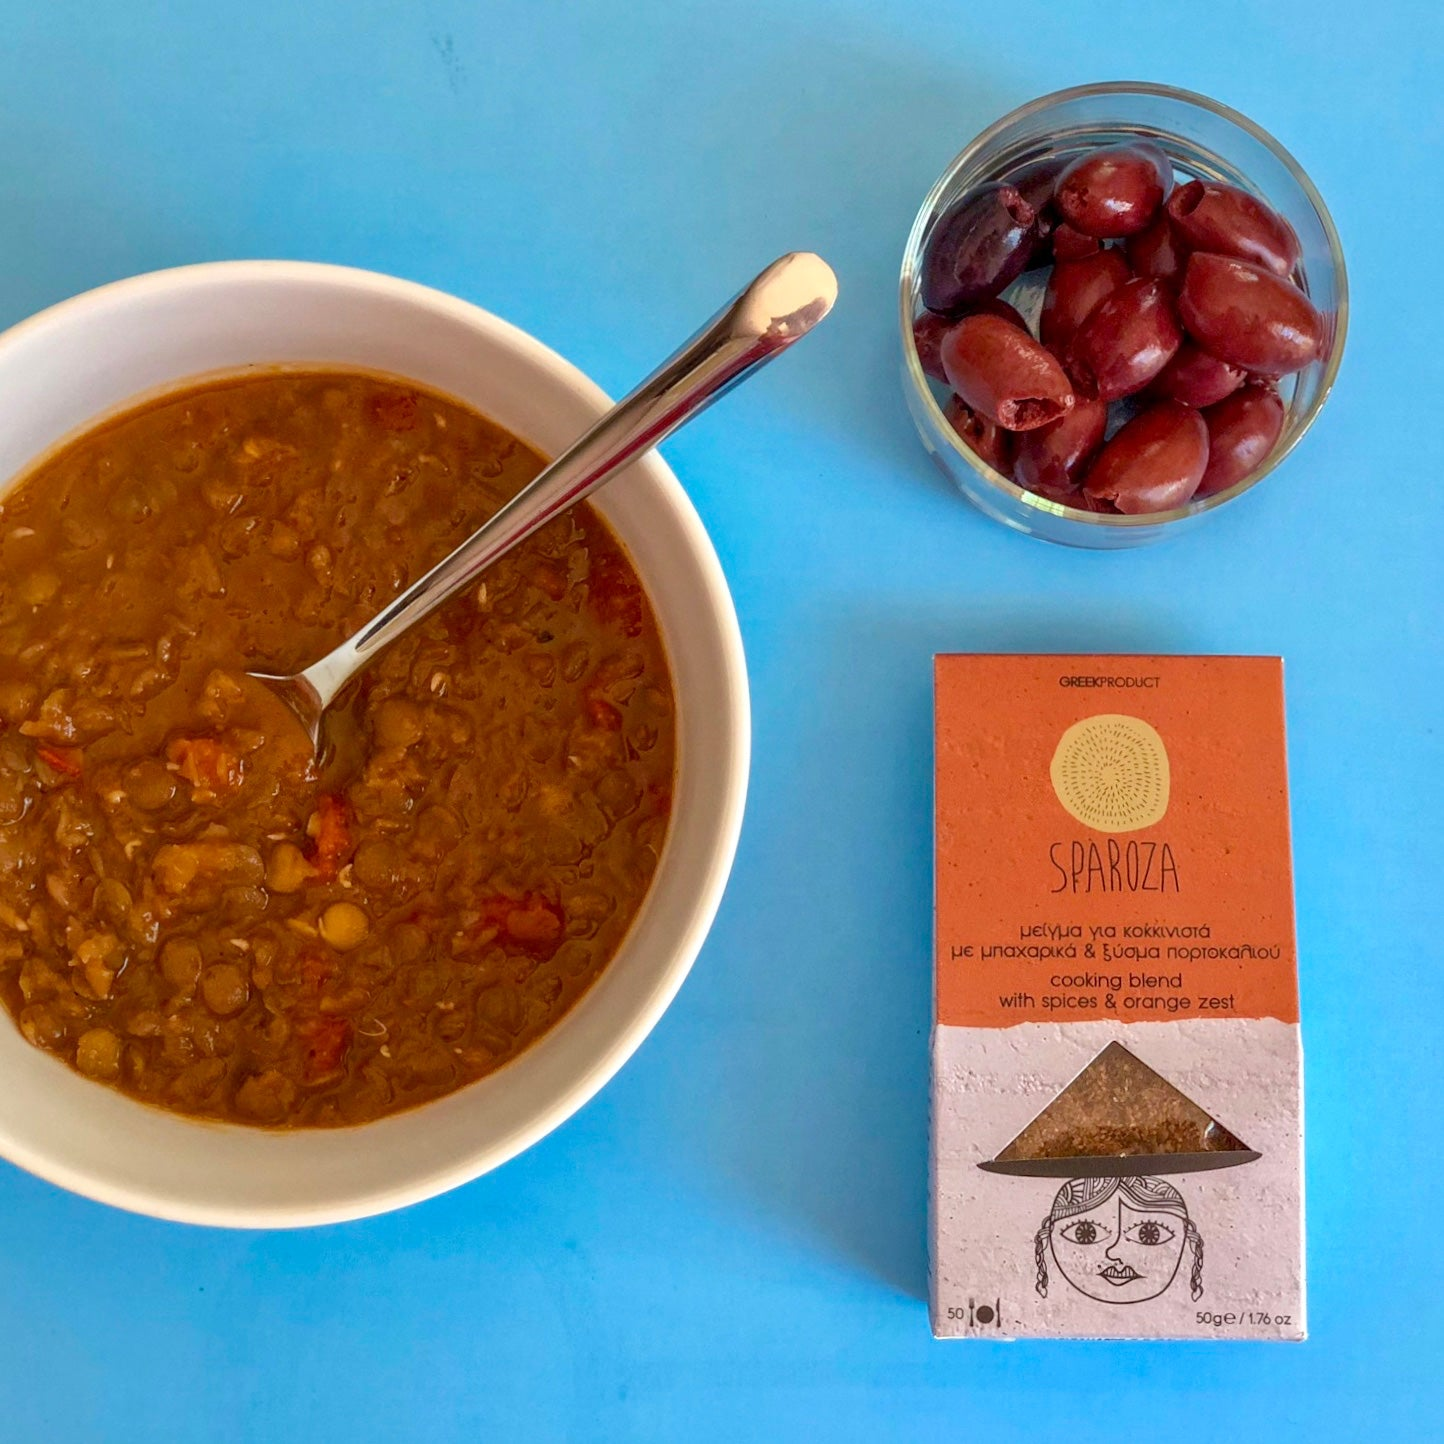 traditional greek lentil soup with spicy flaming red pepper all-natural spread from Elli & Manos